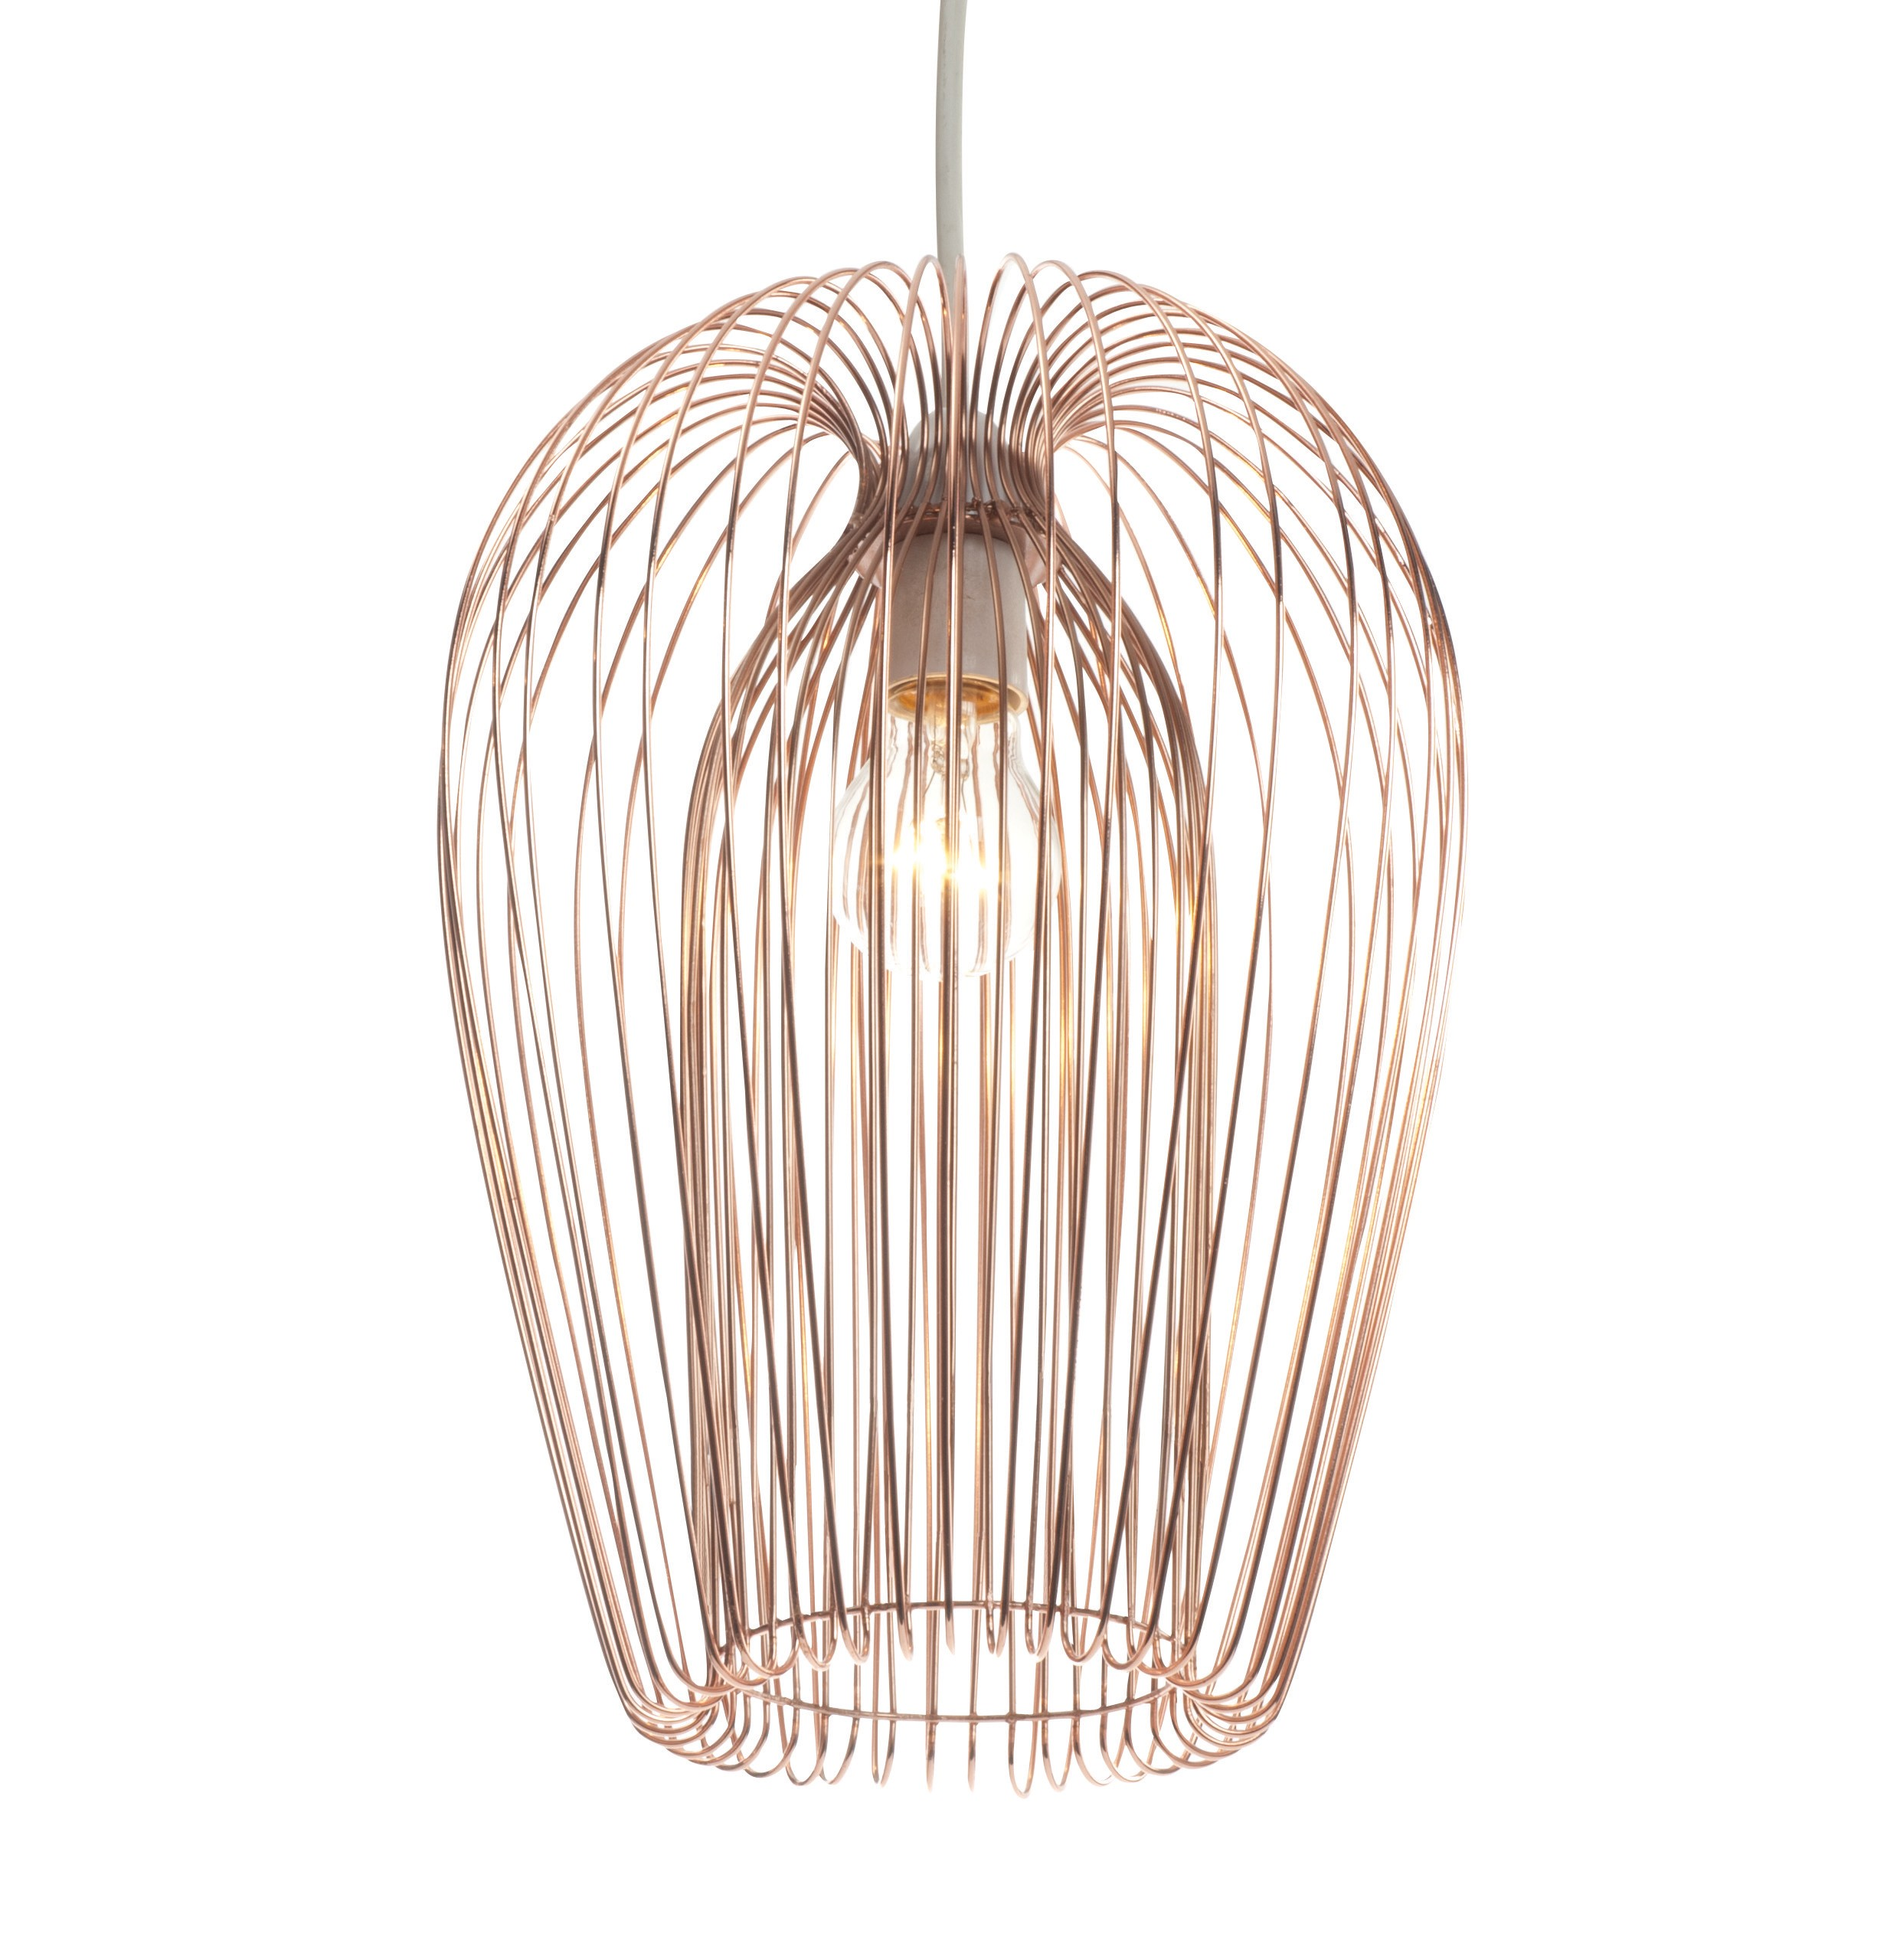 white ceiling light camparo b prd wire departments q bq copper diy pendant at